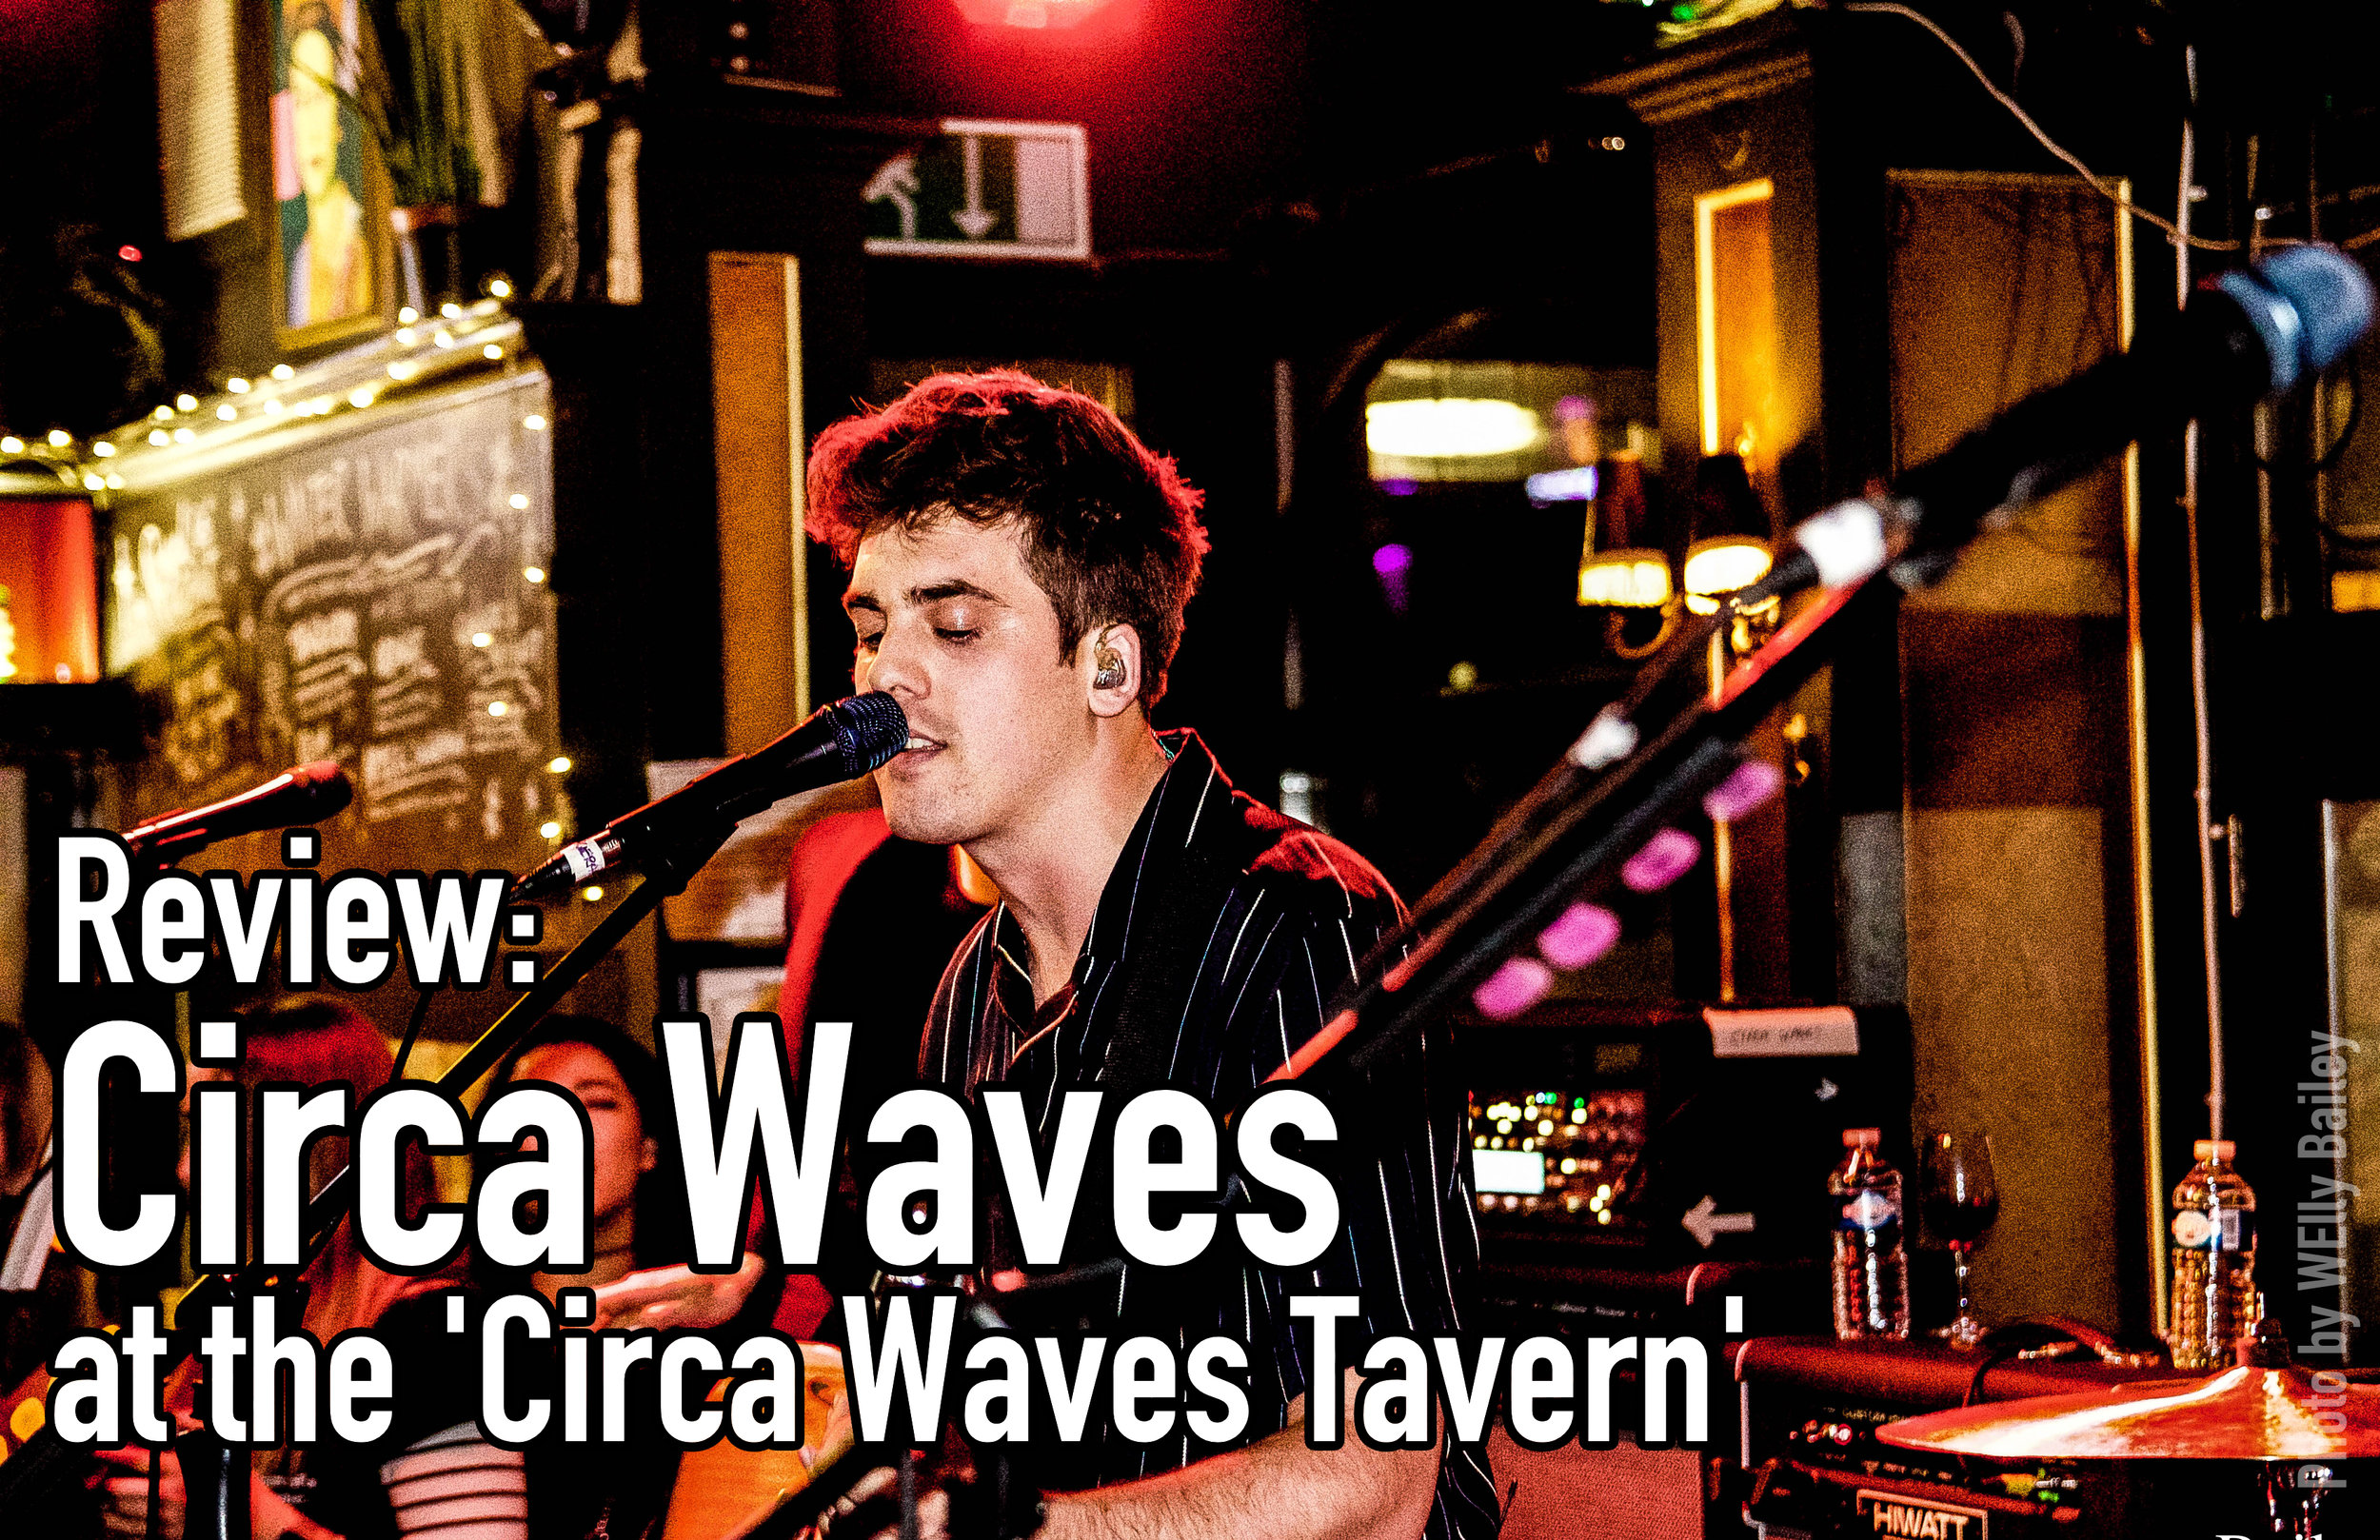 circa_waves_tavern.jpg